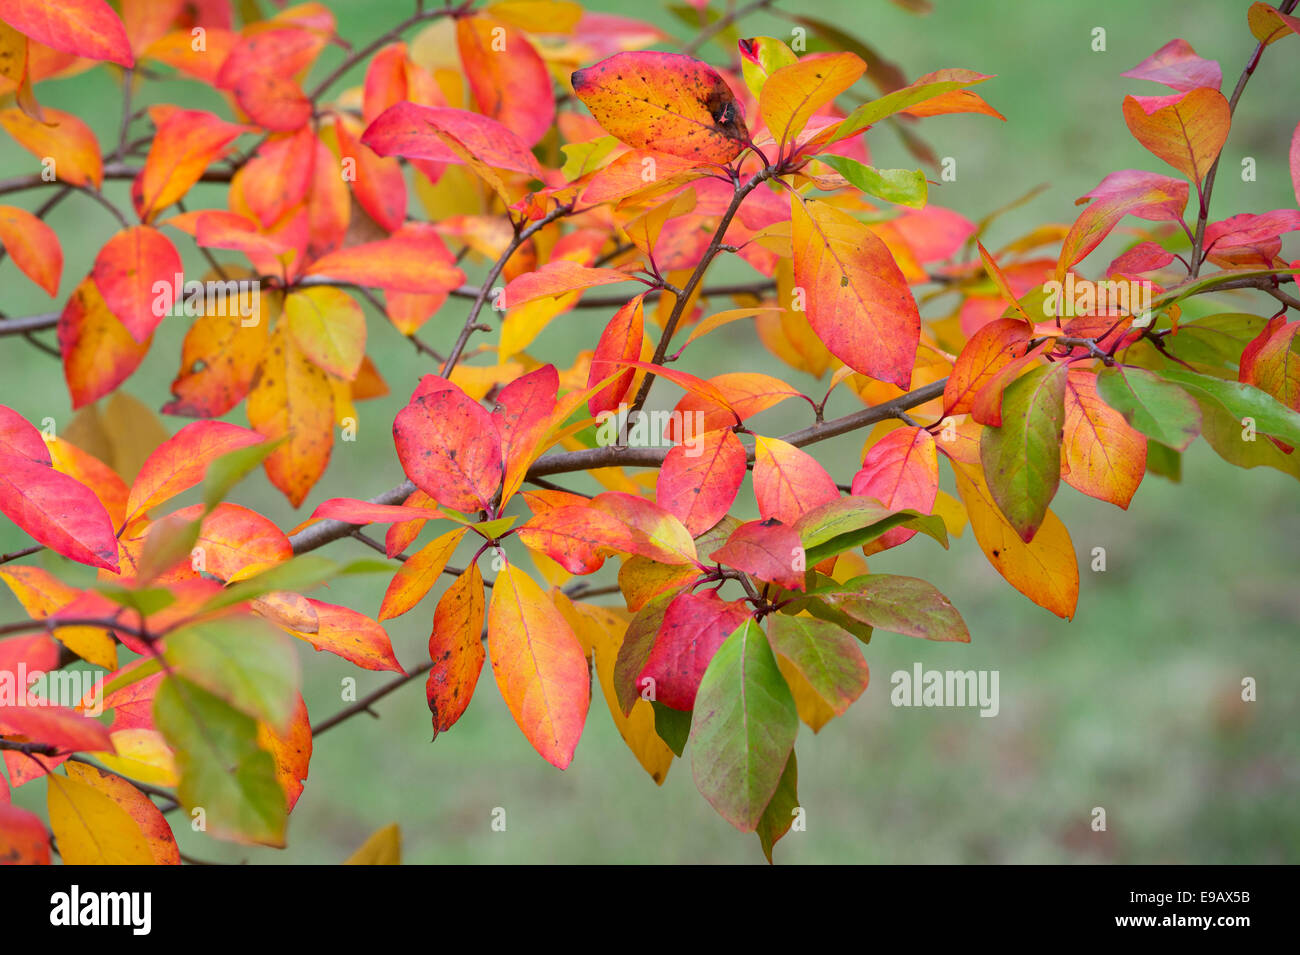 Nyssa sylvatica 'Wisley Bonfire'. Black gum 'Wisley Bonfire' leaves in autumn - Stock Image